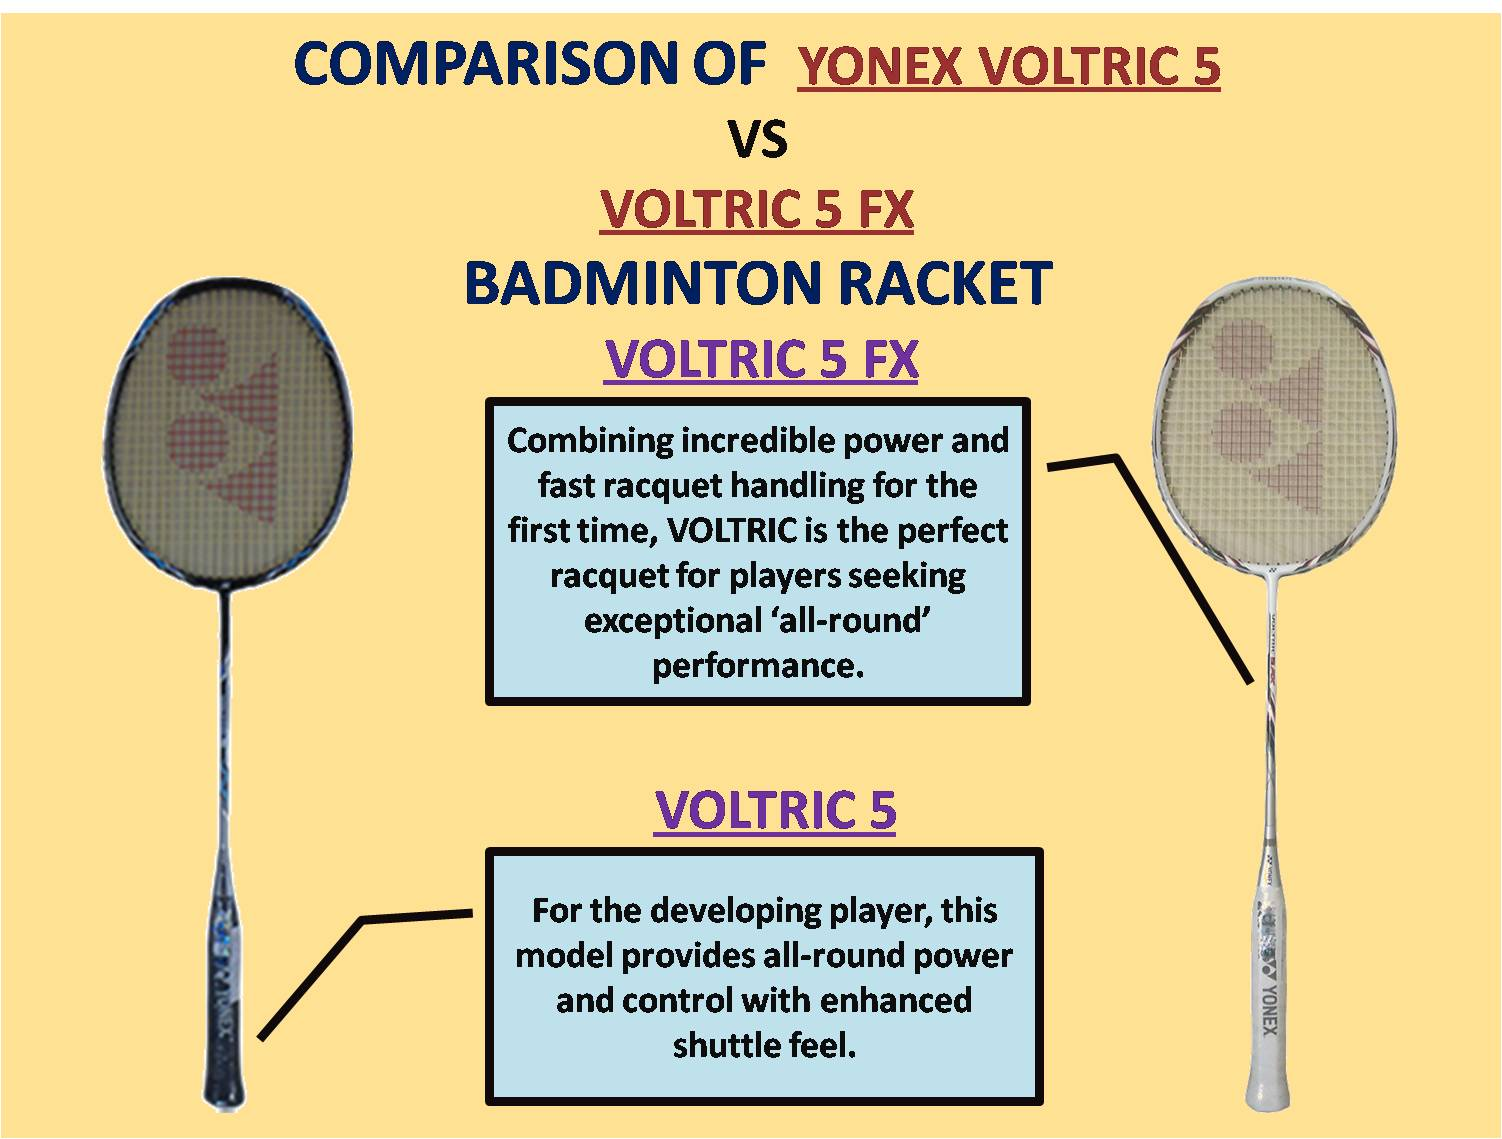 COMPARISON OF YONEX VOLTRIC 5 VS VOLTRIC 5FX_1